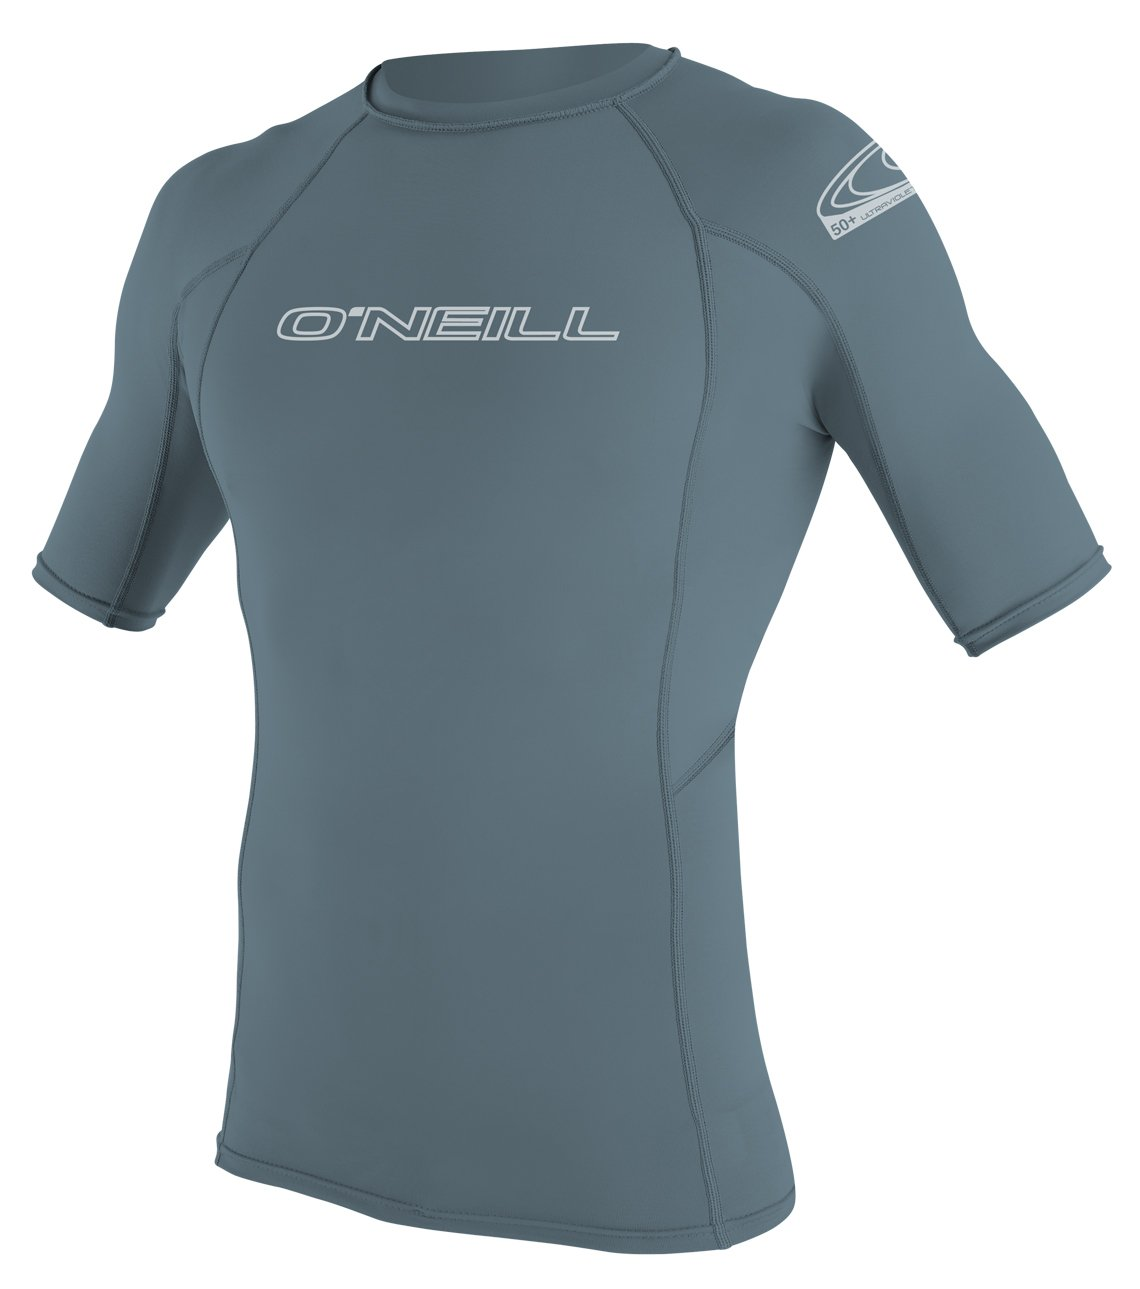 O'Neill Wetsuits Men's Basic Skins UPF 50+ Short Sleeve Rash Guard, Dusty Blue, Large by O'Neill Wetsuits